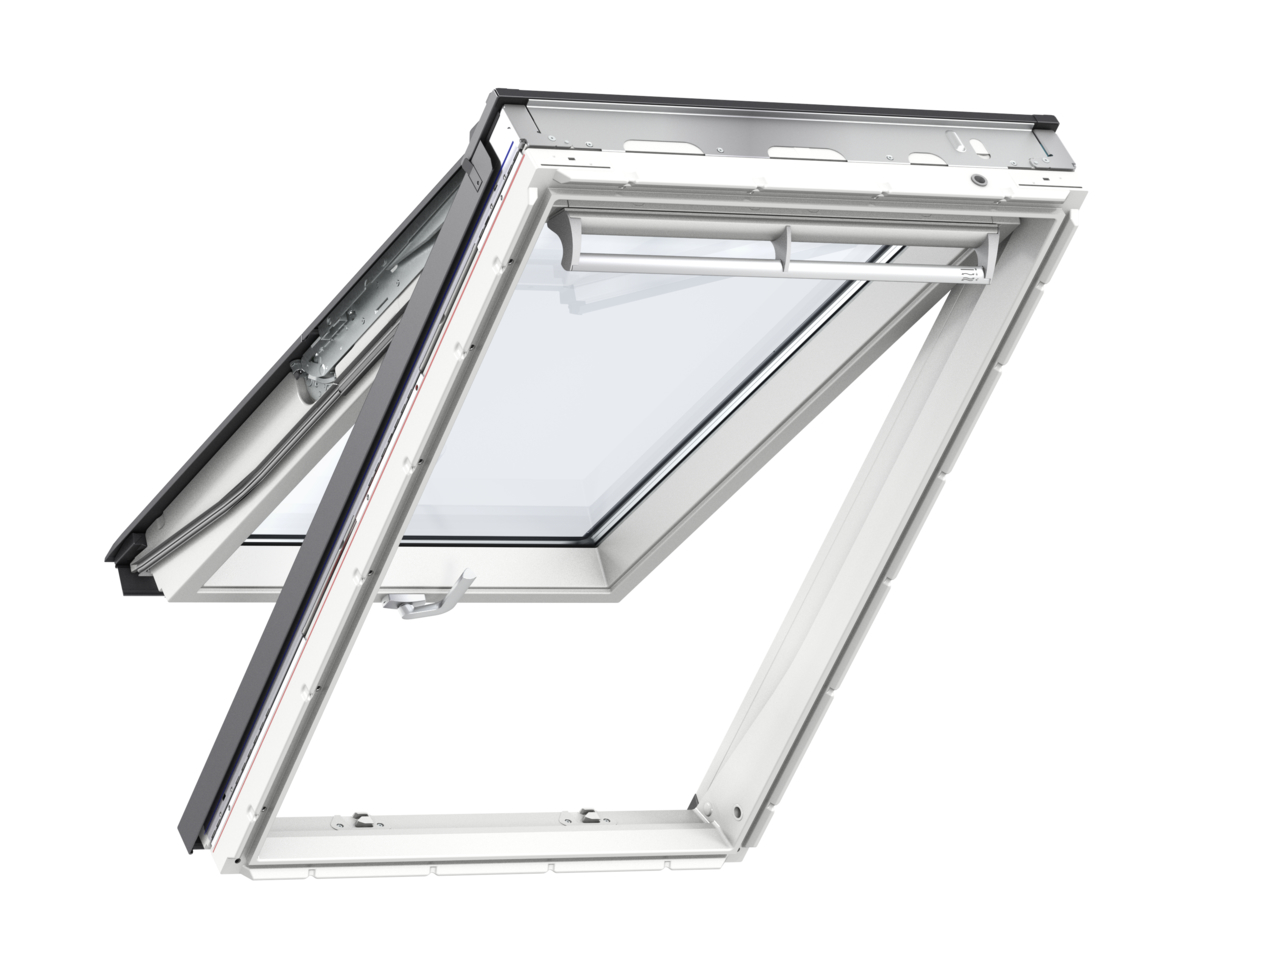 Velux GPU PK10 940 x 1600mm Top Hung 62Pane Roof Window - White Polyurethane